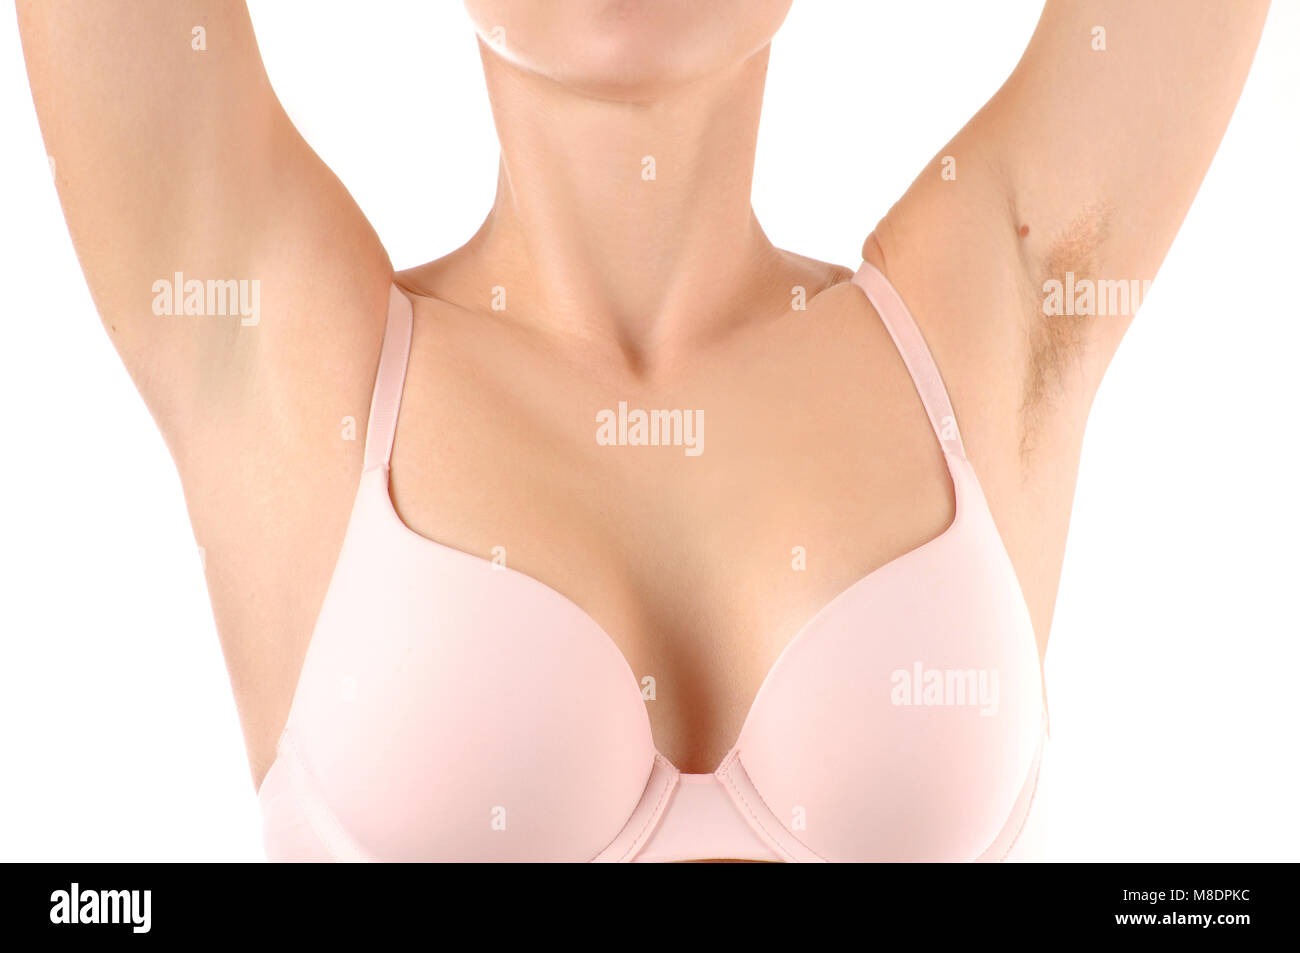 Female armpits before and after shaving. Woman with hairy armpit and clean armpit - Stock Image